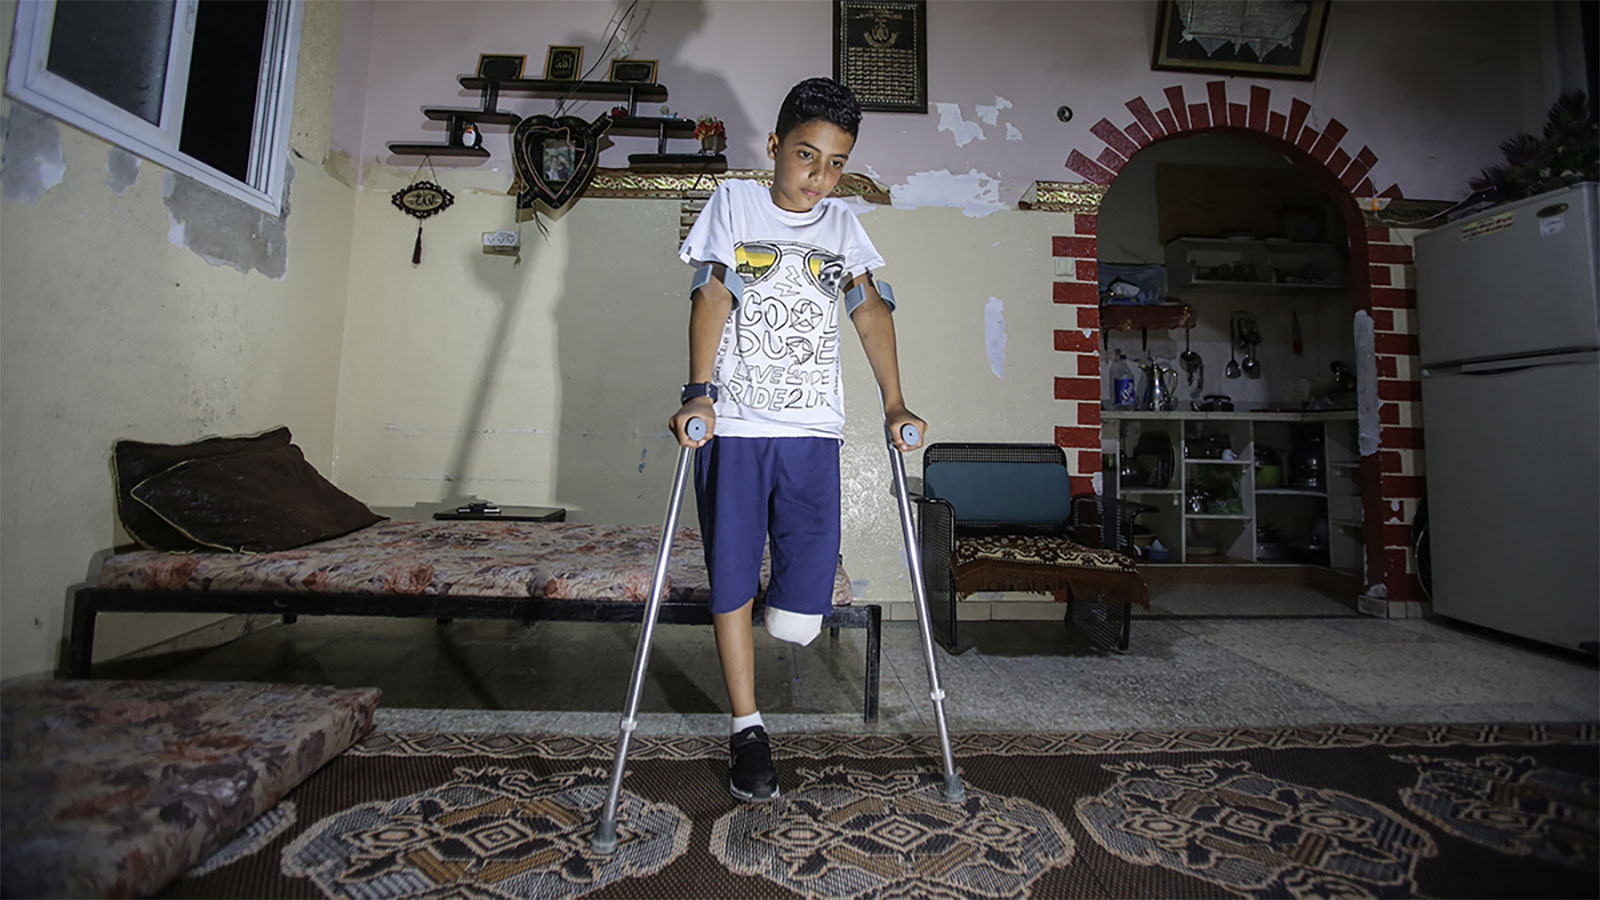 Gaza emergency | Rehabilitation services urgently needed to prevent disability